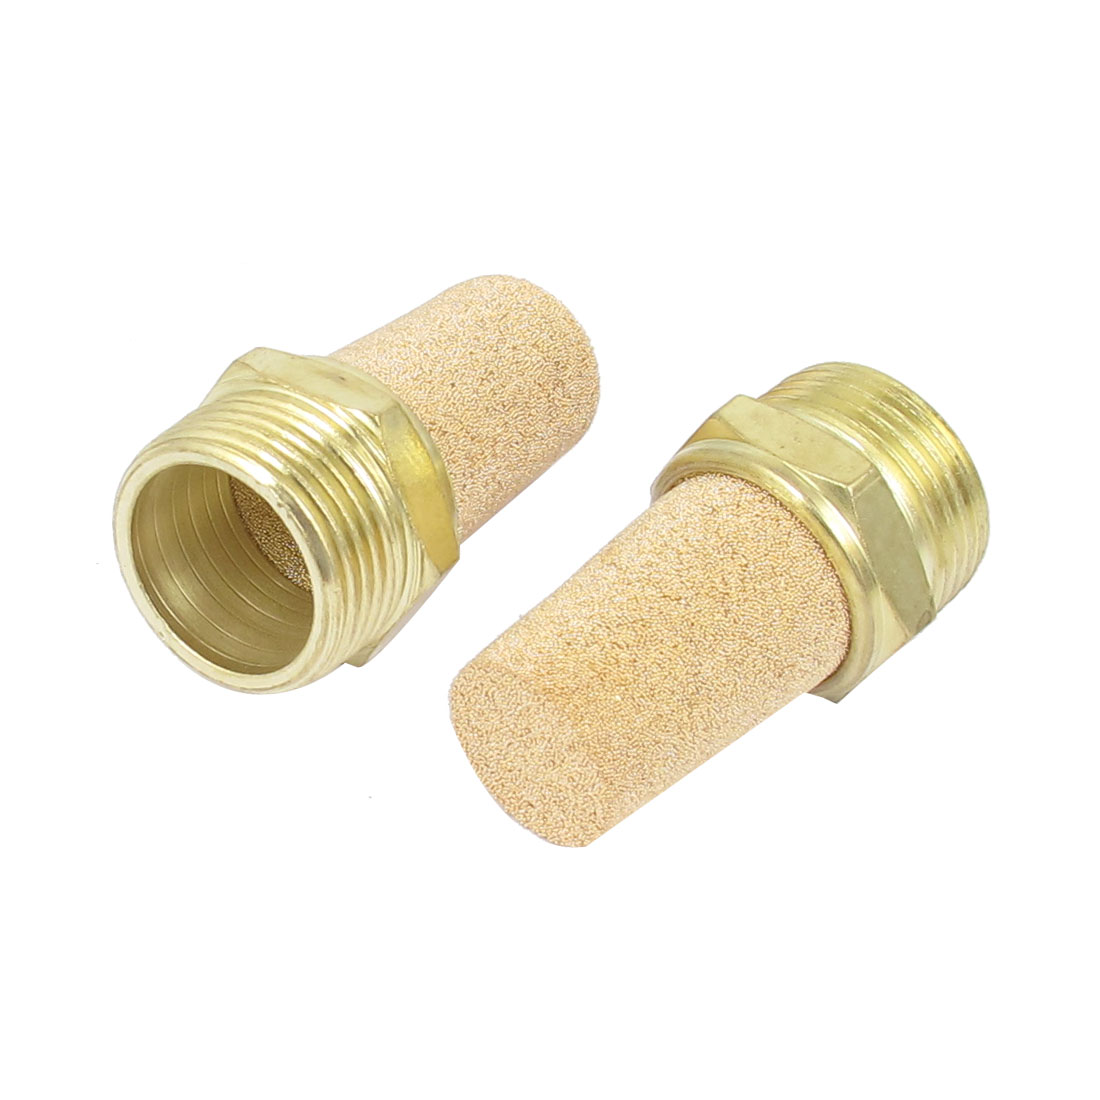 3/4 BSP Male Thread Brass Pneumatic Air Exhaust Breather Muffler Filter 2pcs